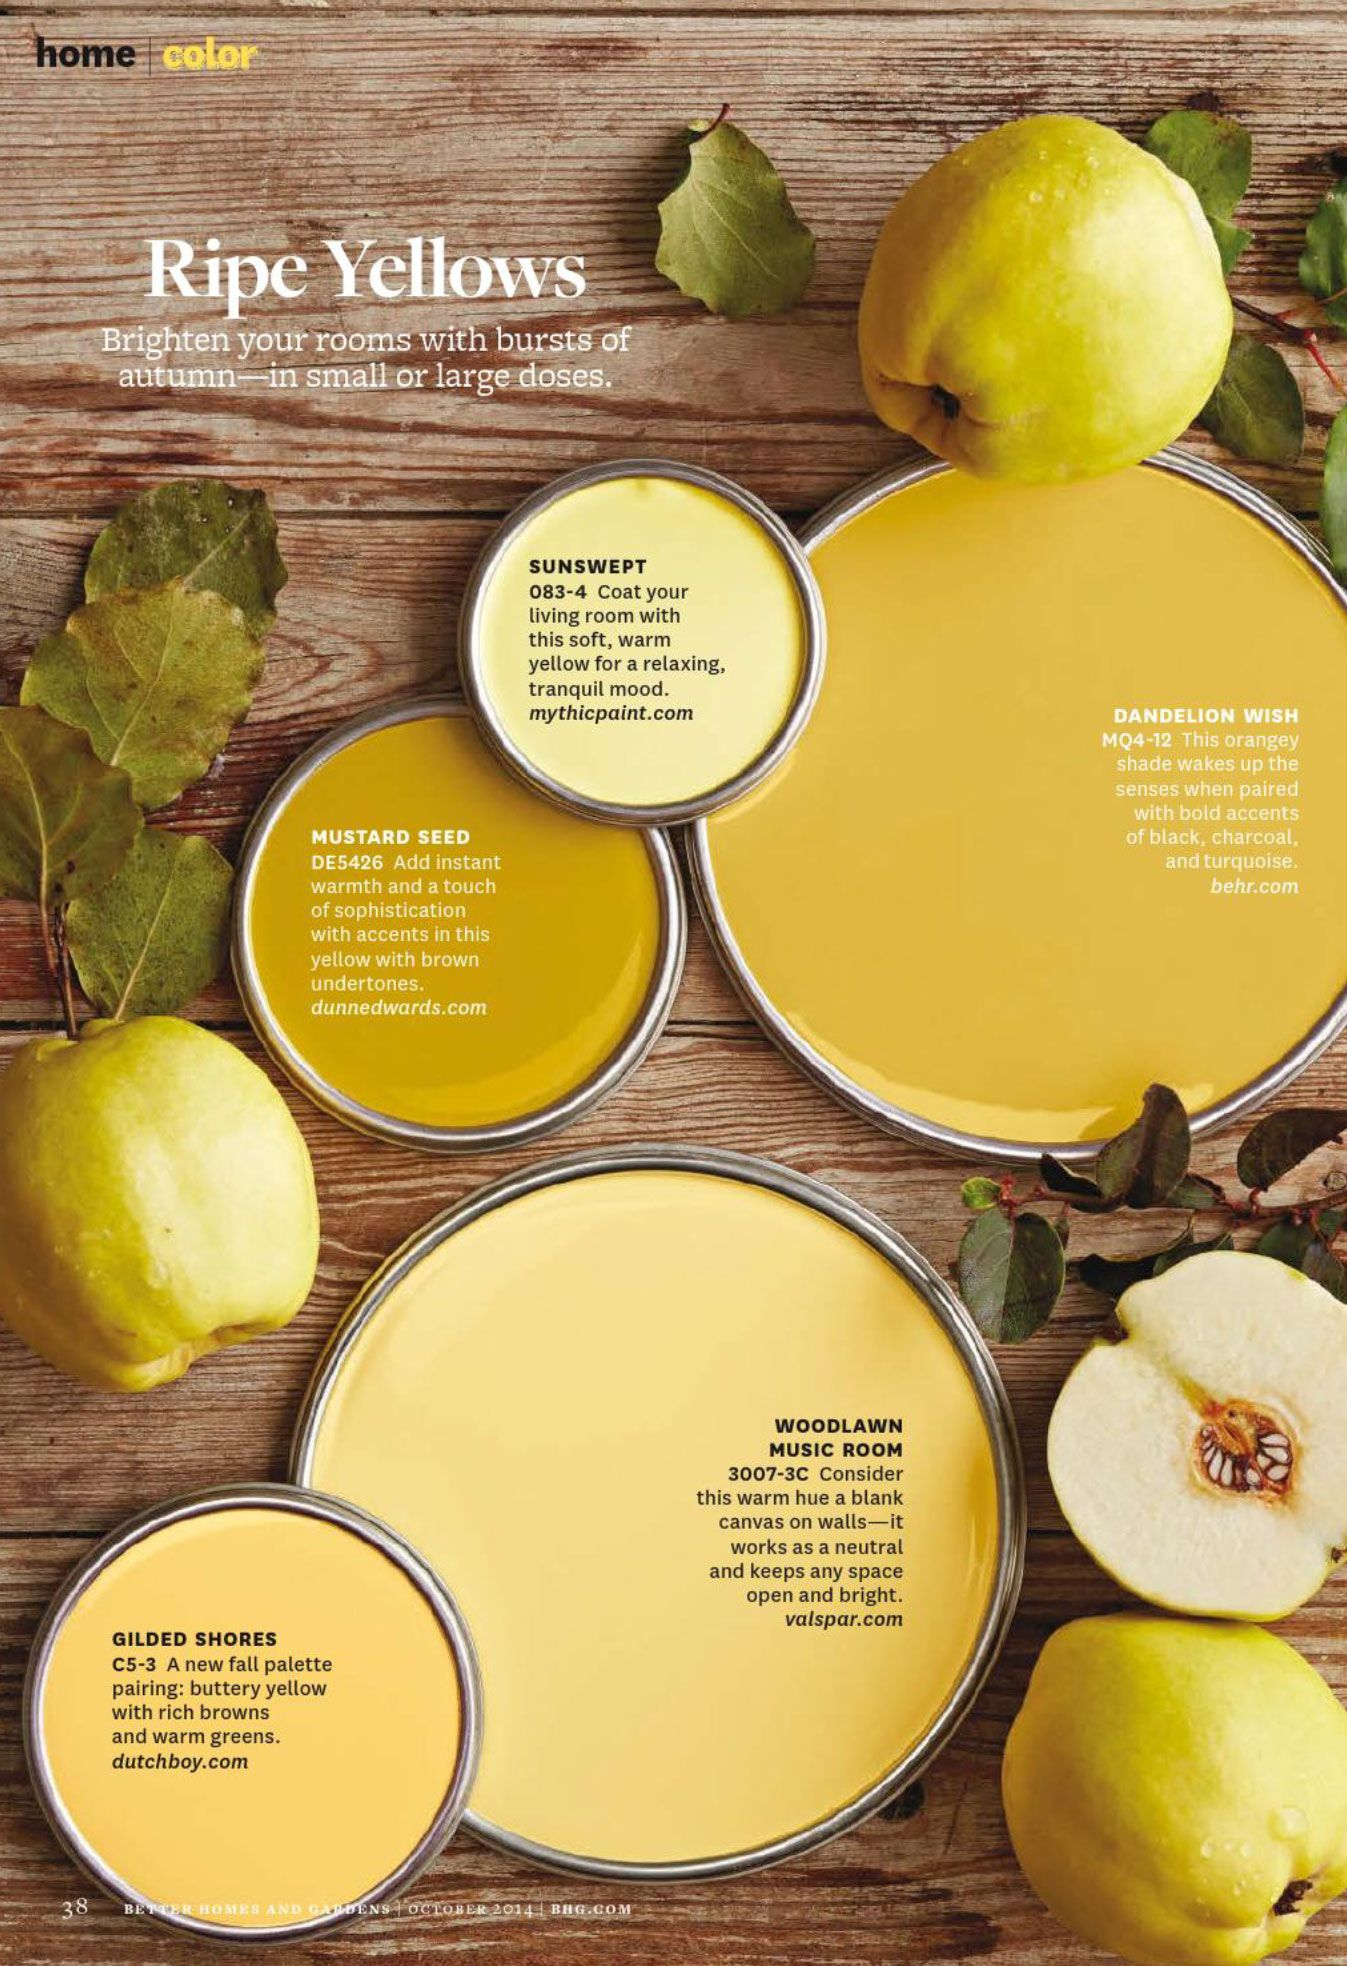 Ripe Yellows Paint Palette Color Used Sunswept 083 4 By Mythicpaint Mustard Seed De5426 Dunnedwards Dandelion Wish Mq4 12 Behr Woodlawn